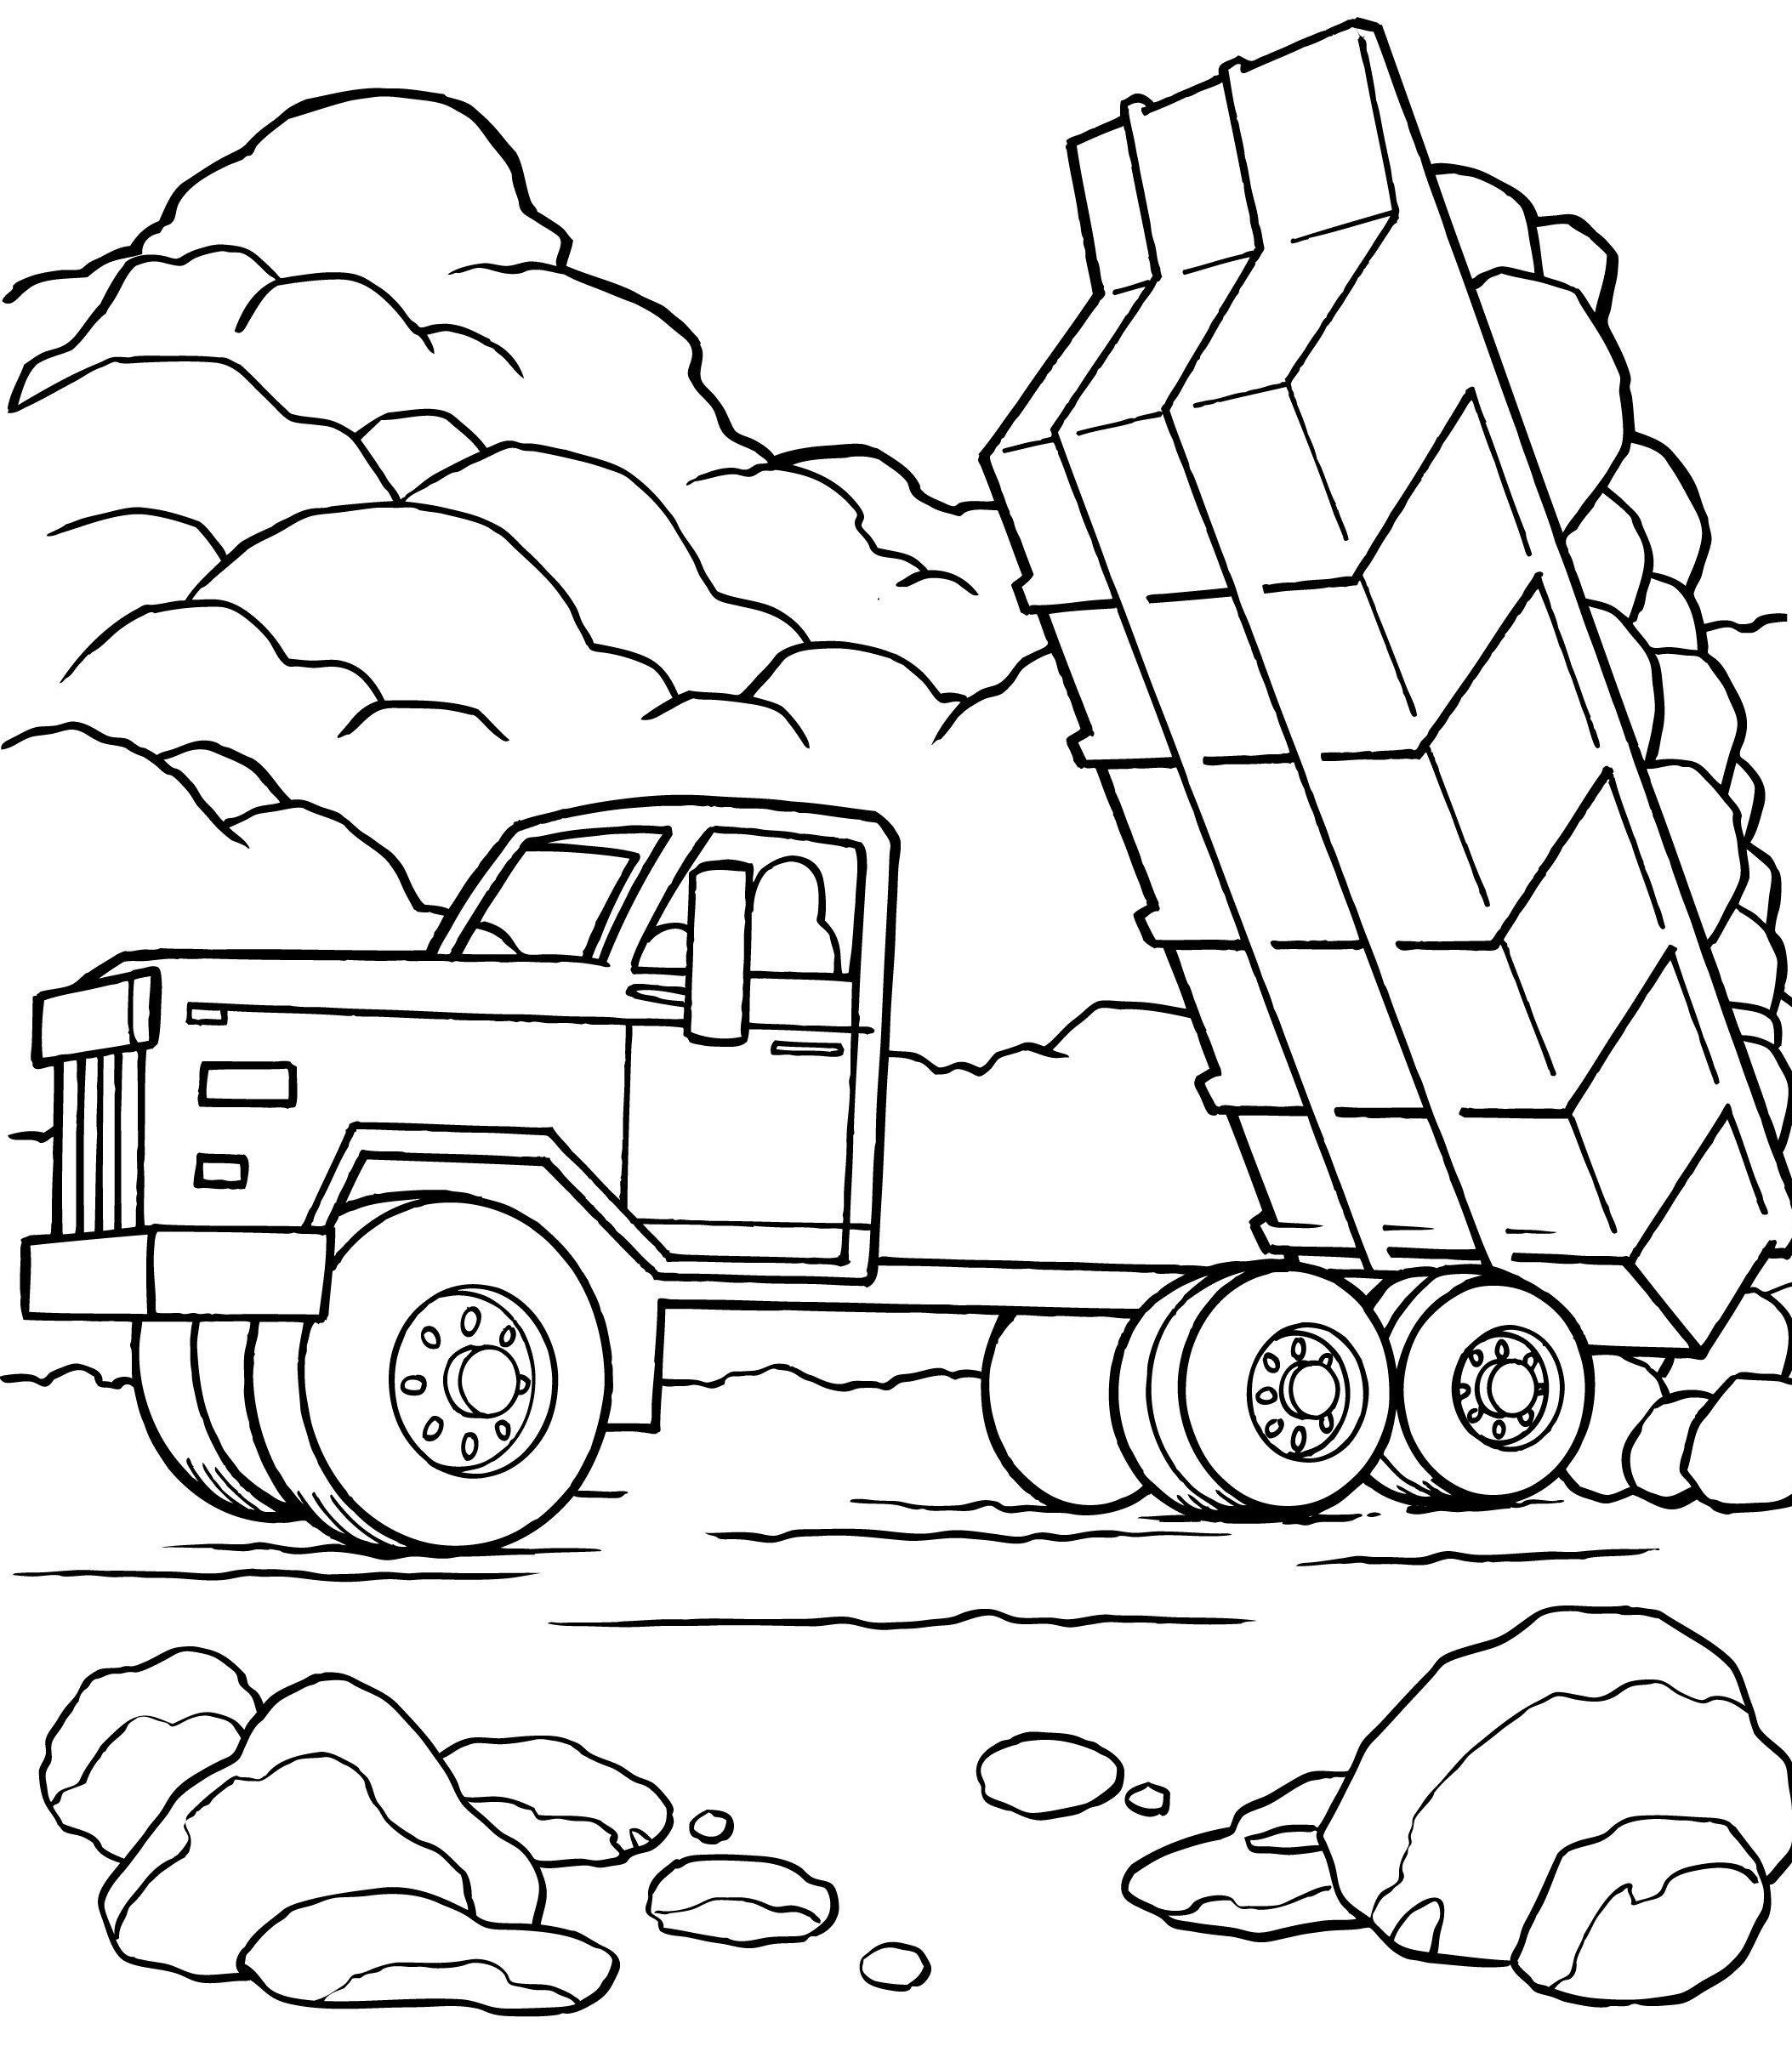 Log Truck Coloring Pages at GetDrawings.com | Free for personal use ...